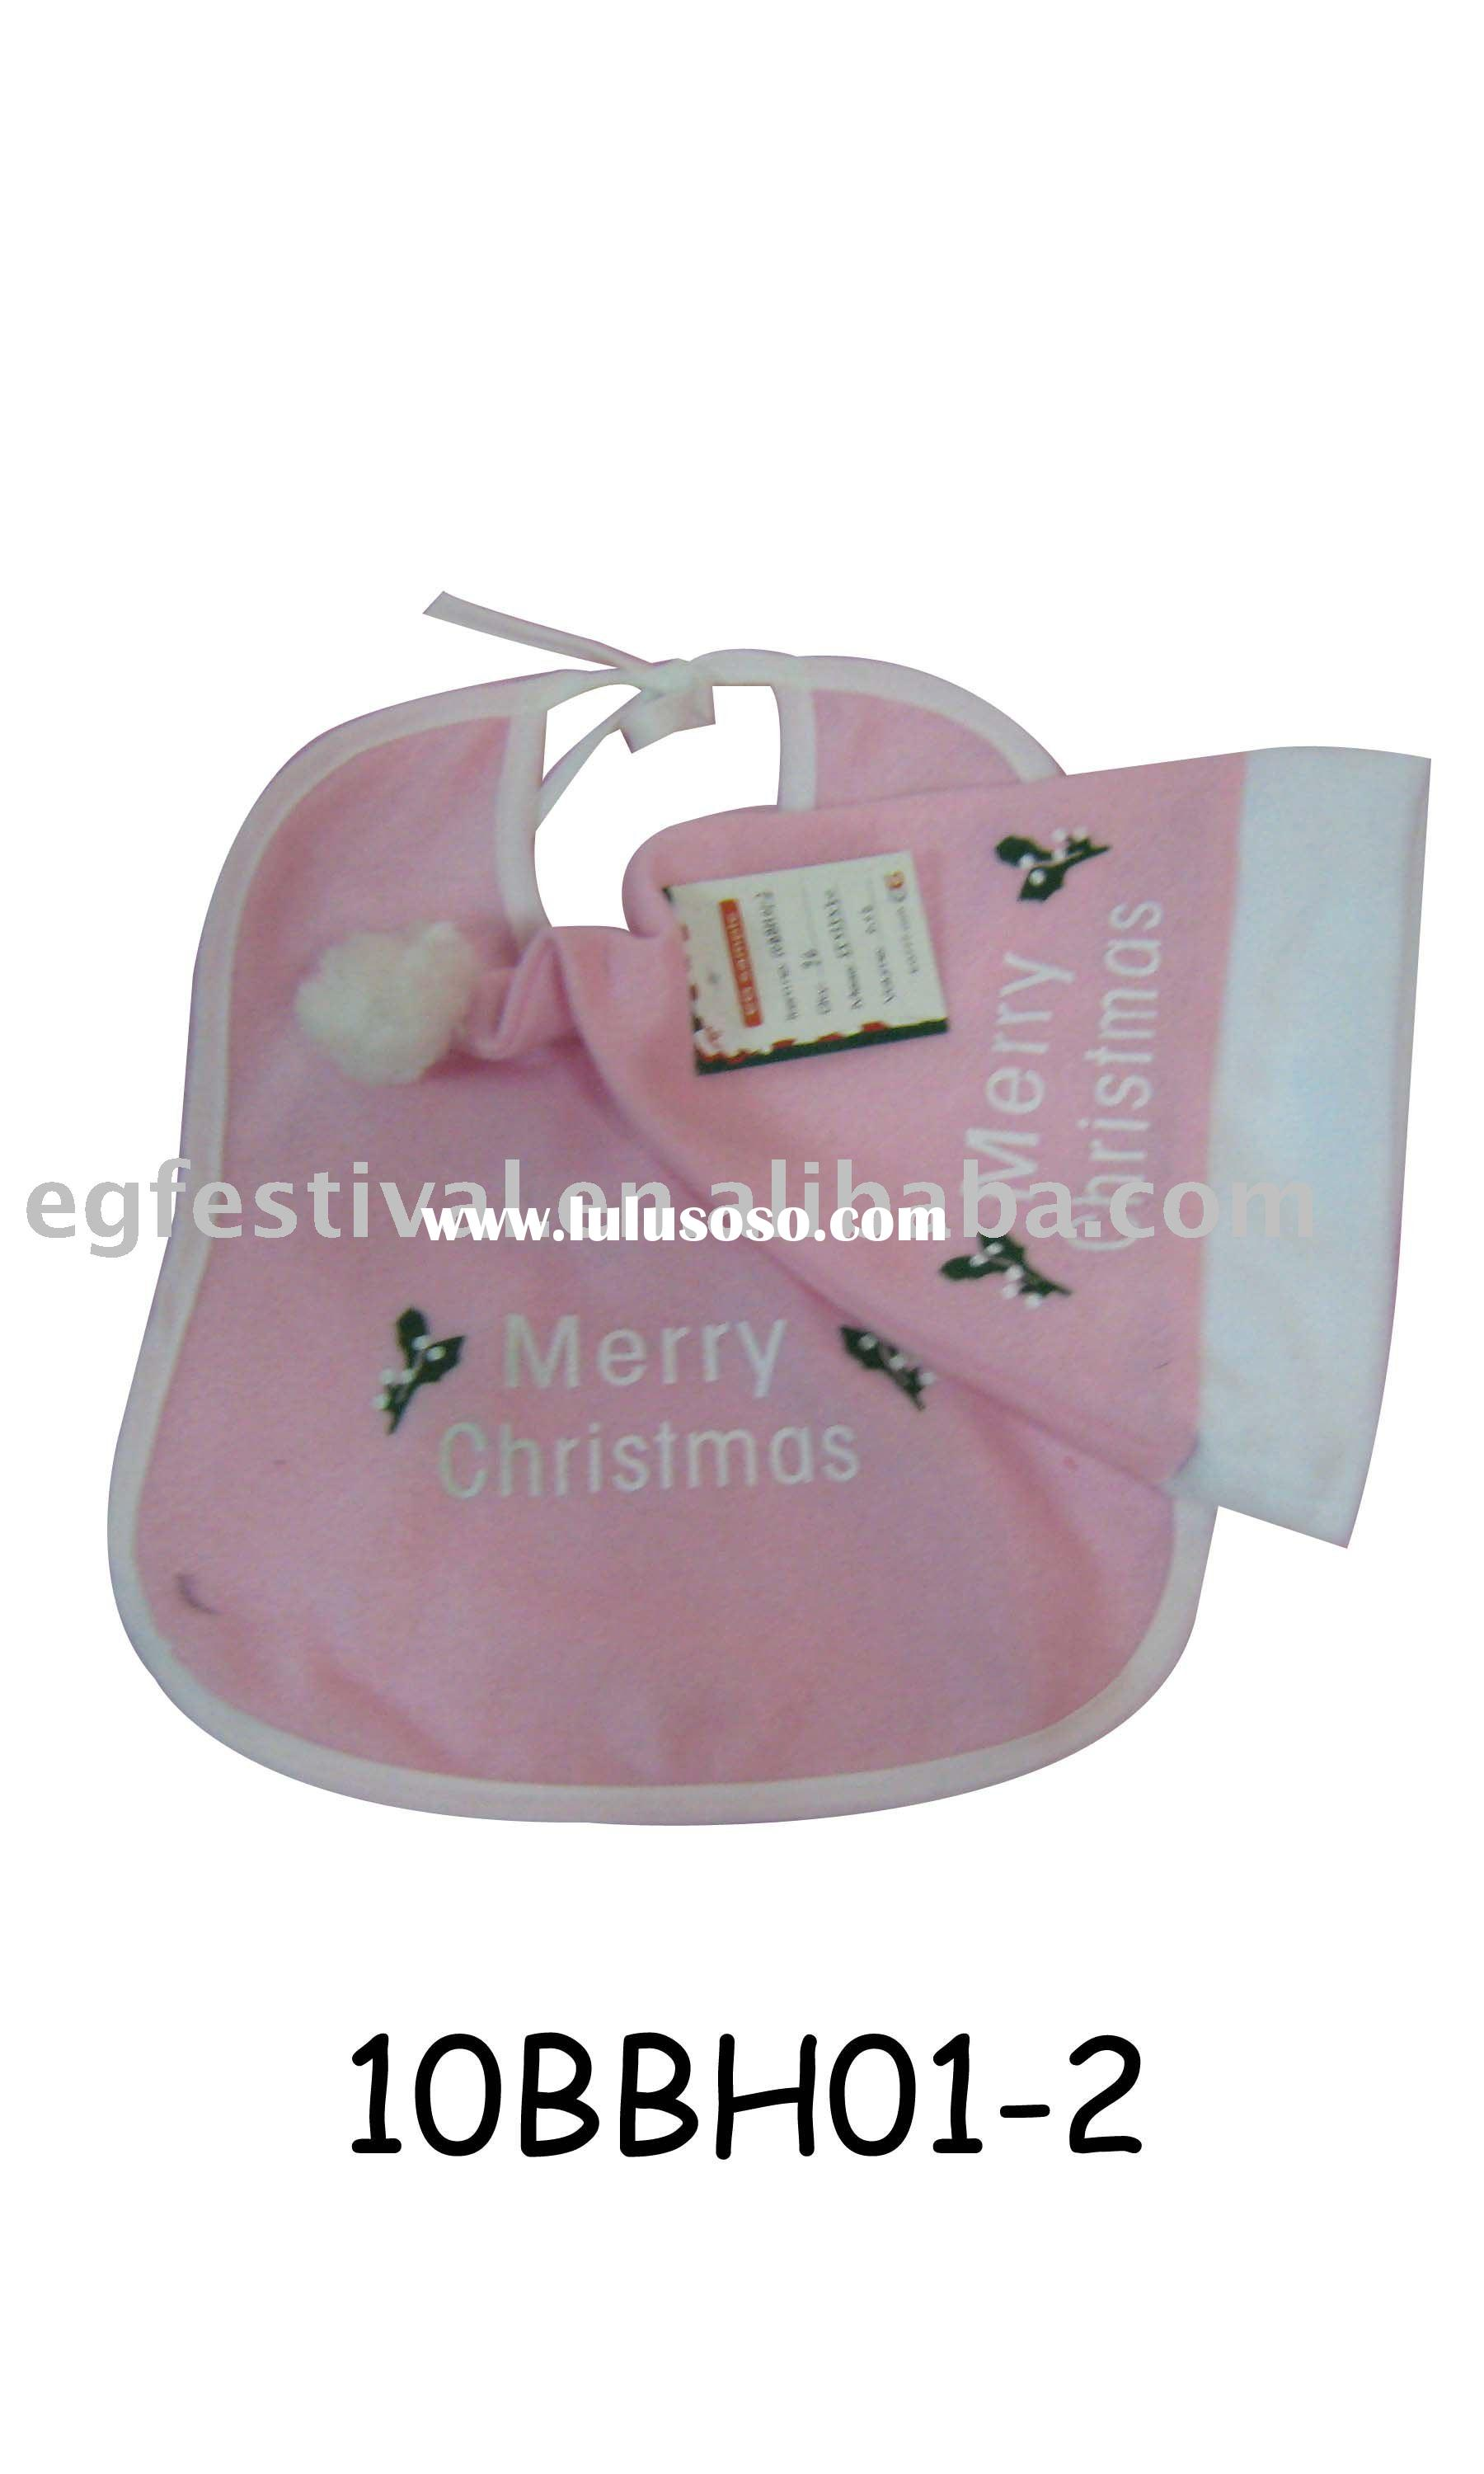 Baby bibs & Baby embroidery bibs&Baby bibs with printing  10BBH01-2